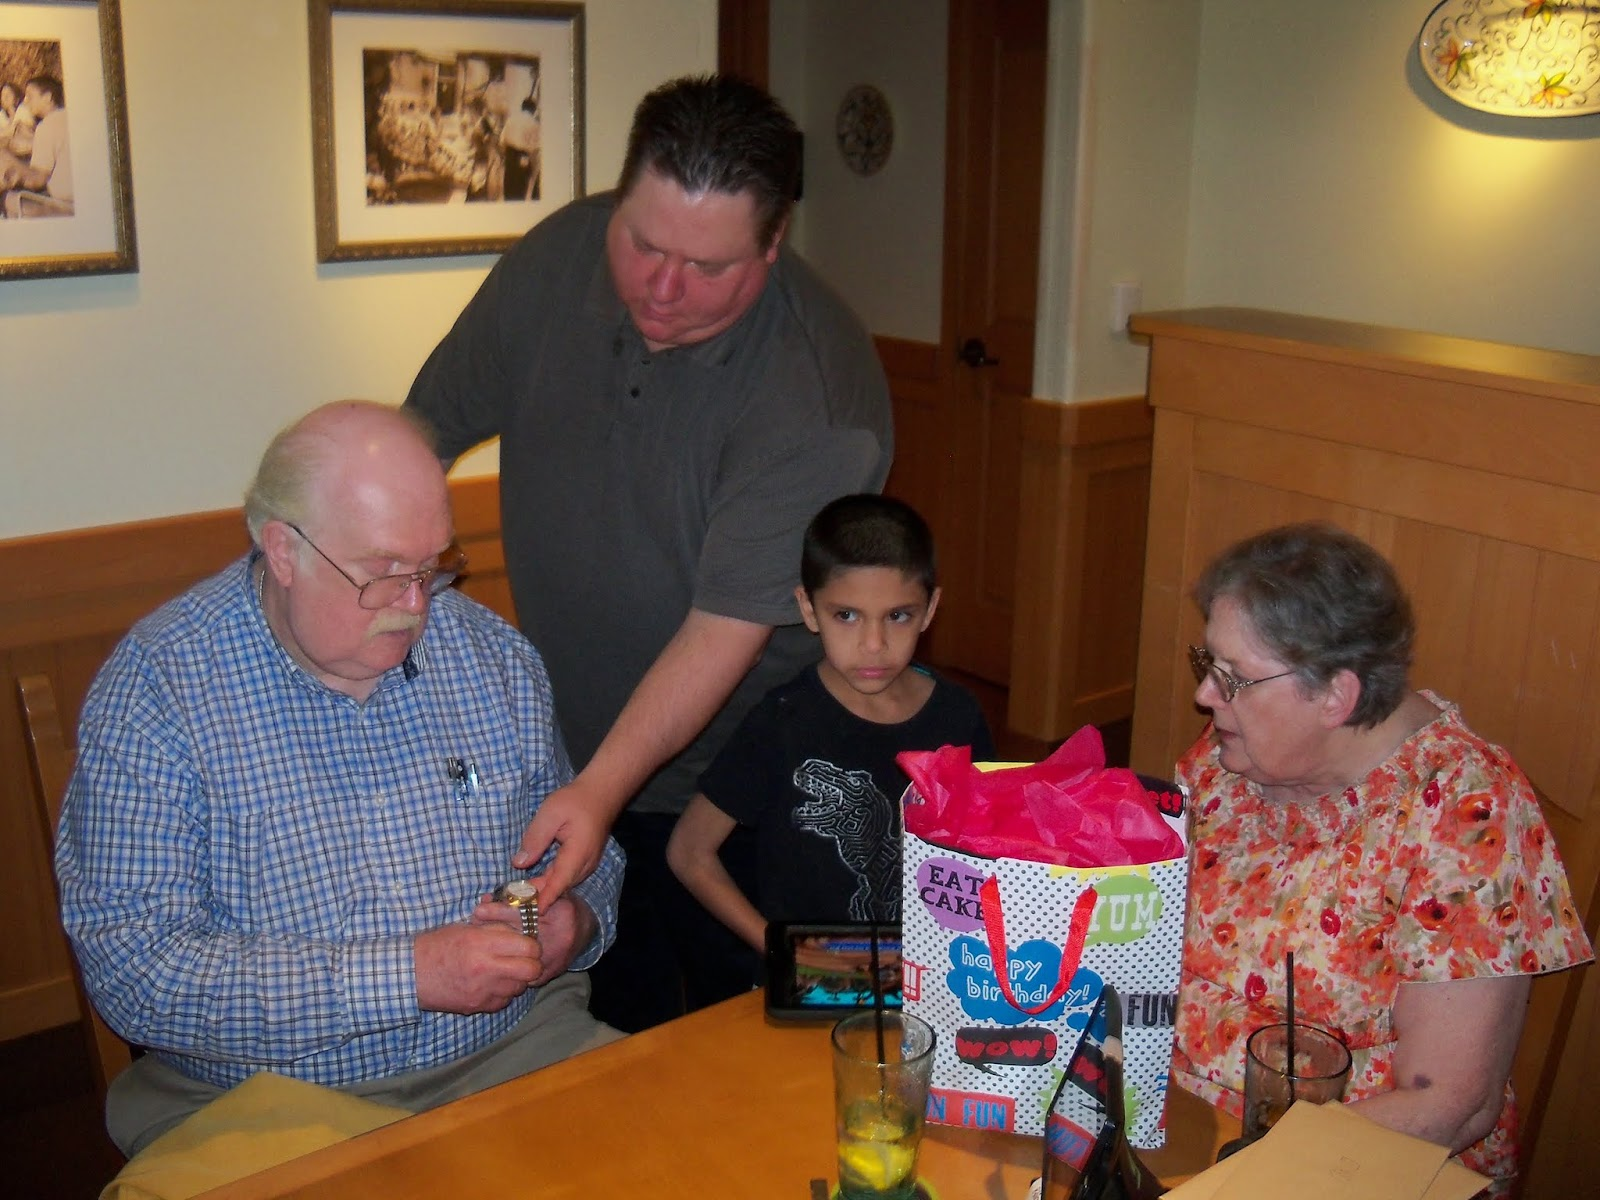 Dads 70th Birthday Party - 116_9520.JPG